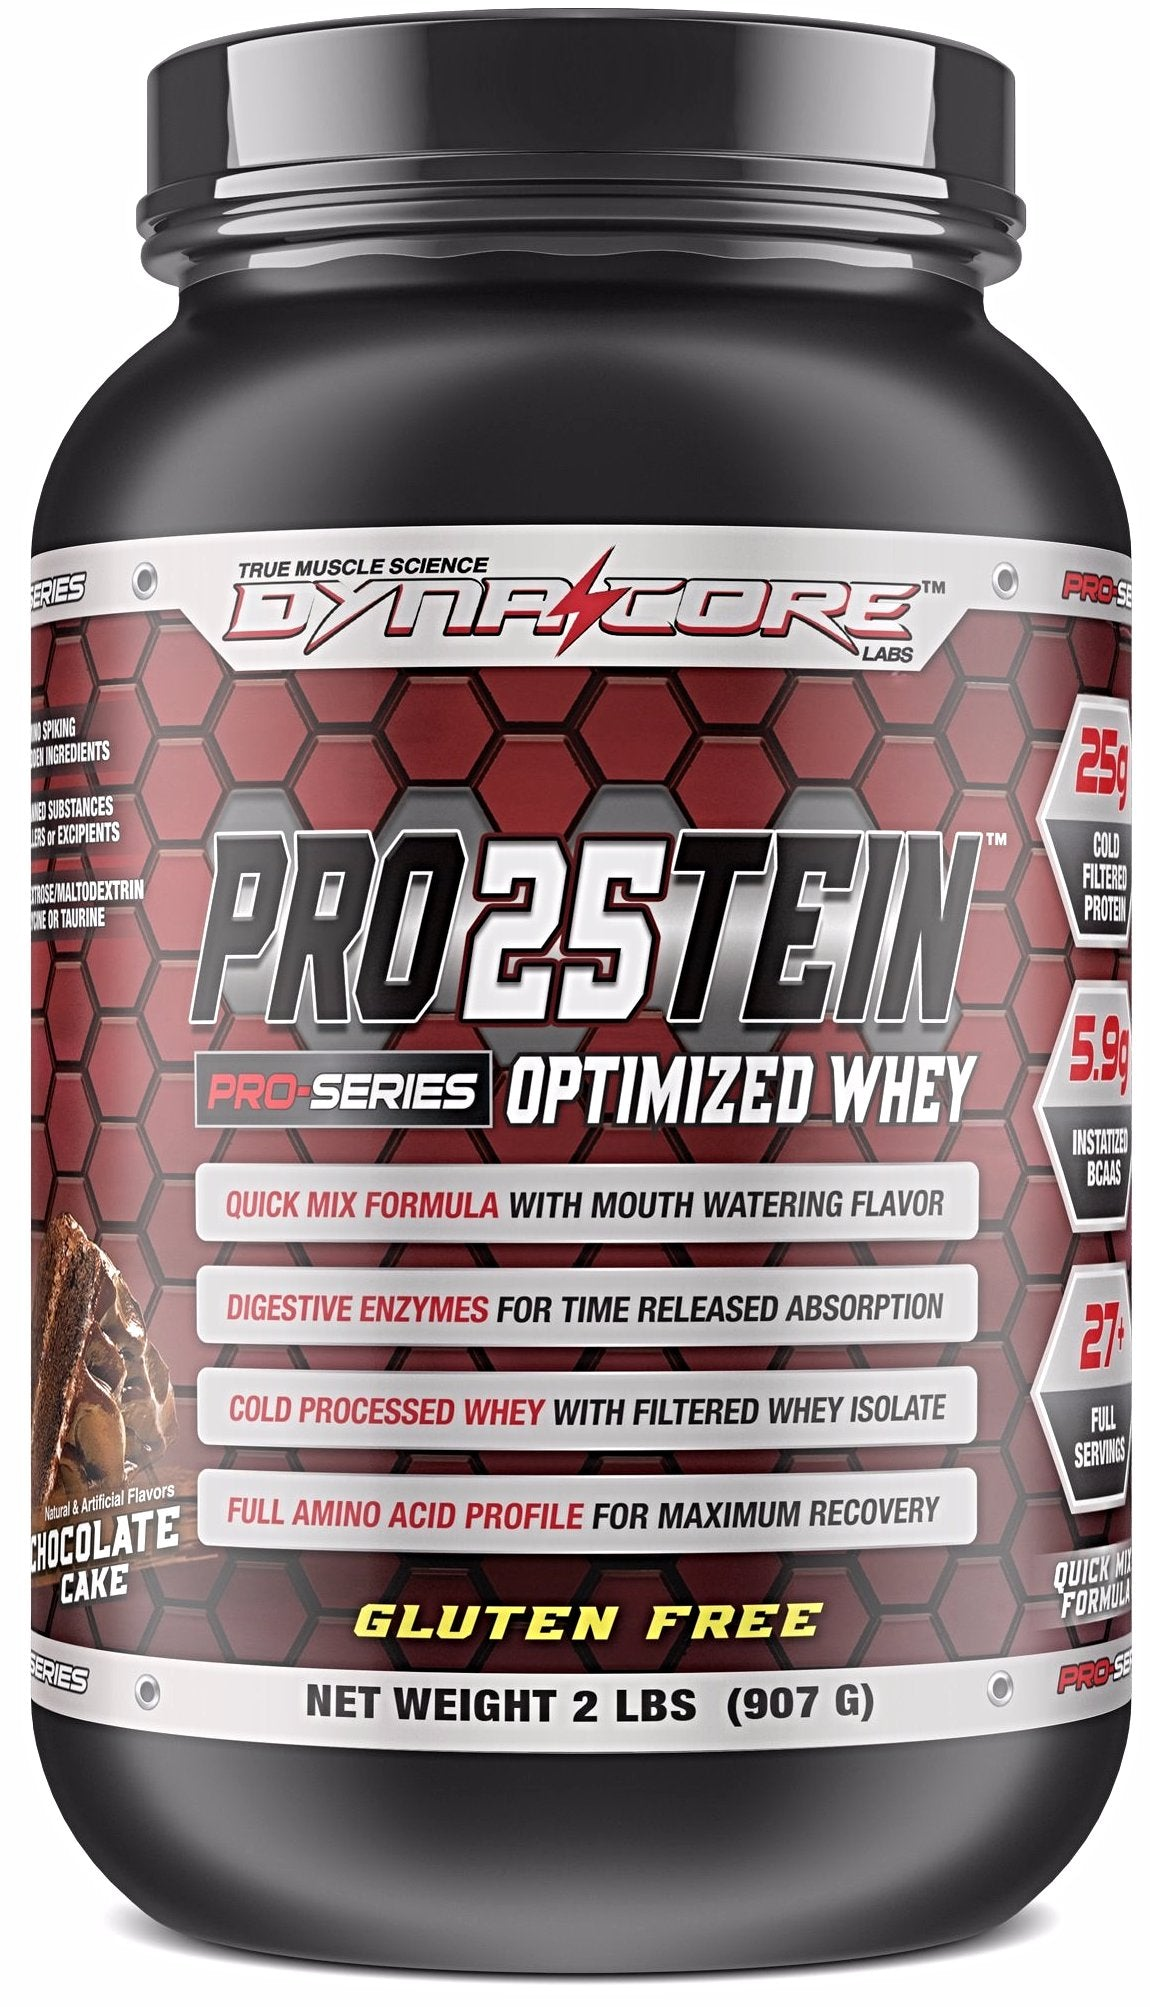 Pro25tein Optimized Whey Protein - Dyna-Core labs